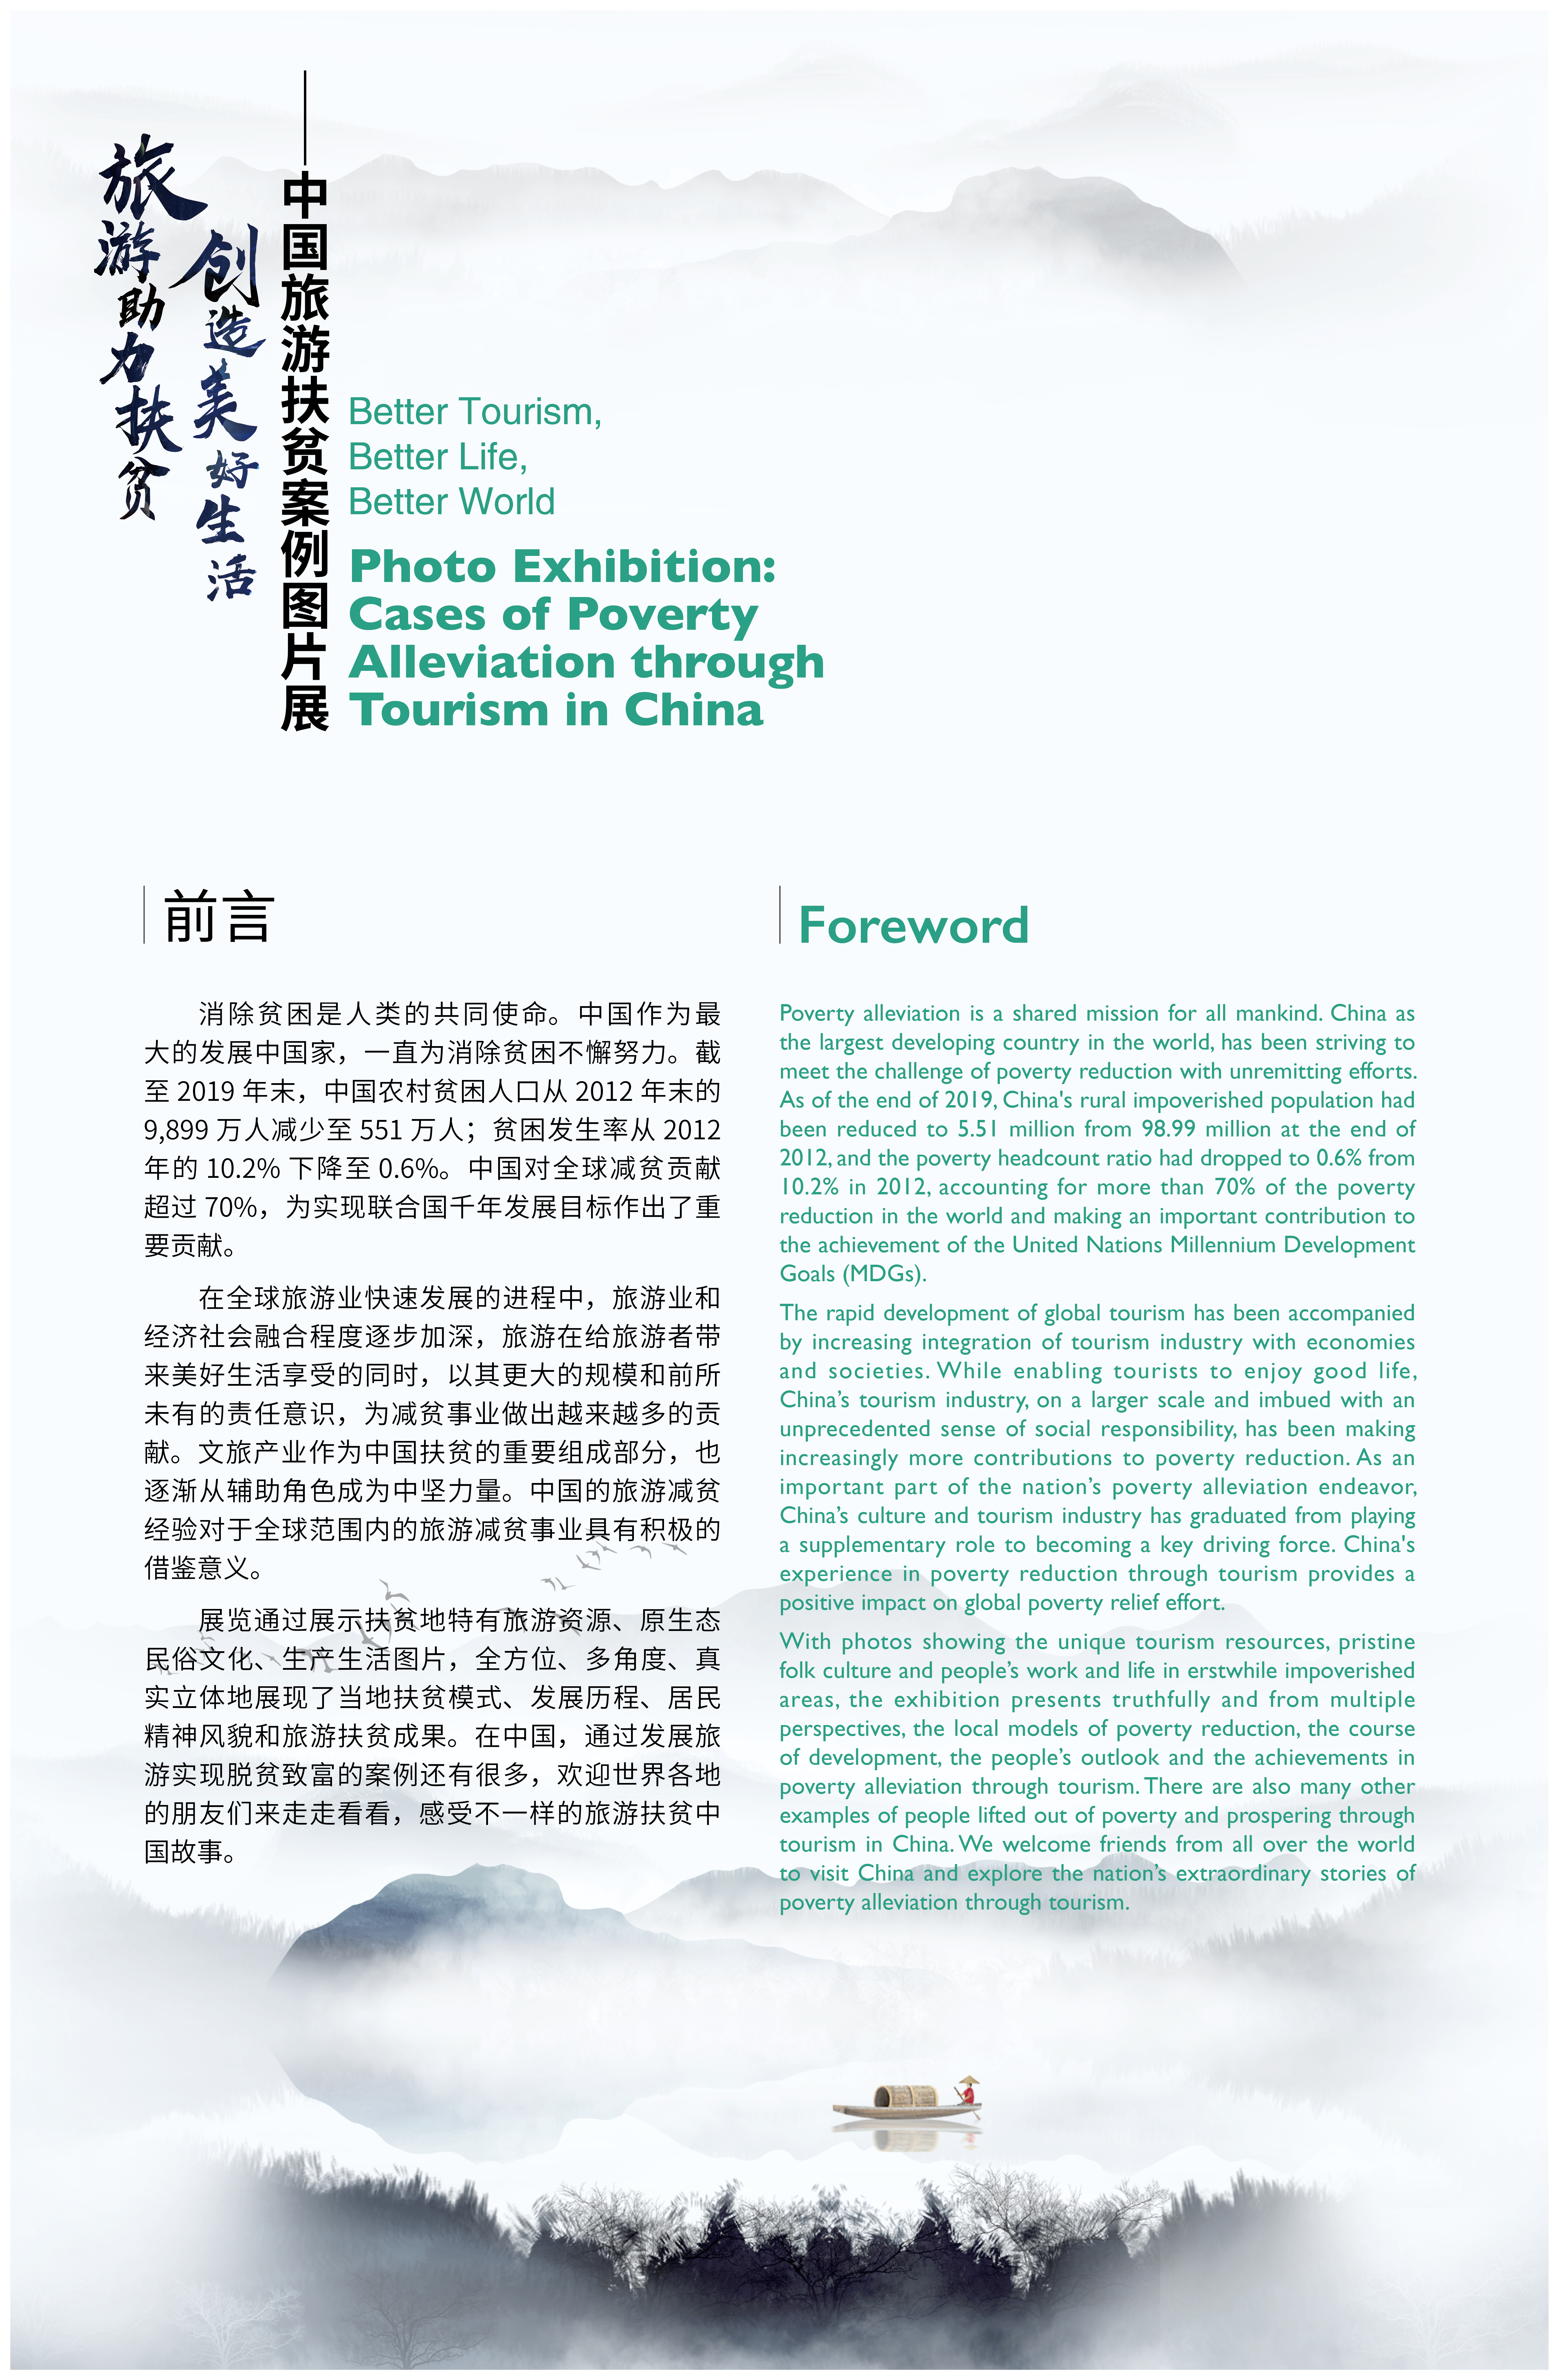 Photo Exhibition: Cases of Poverty Alleviation through Tourism in China